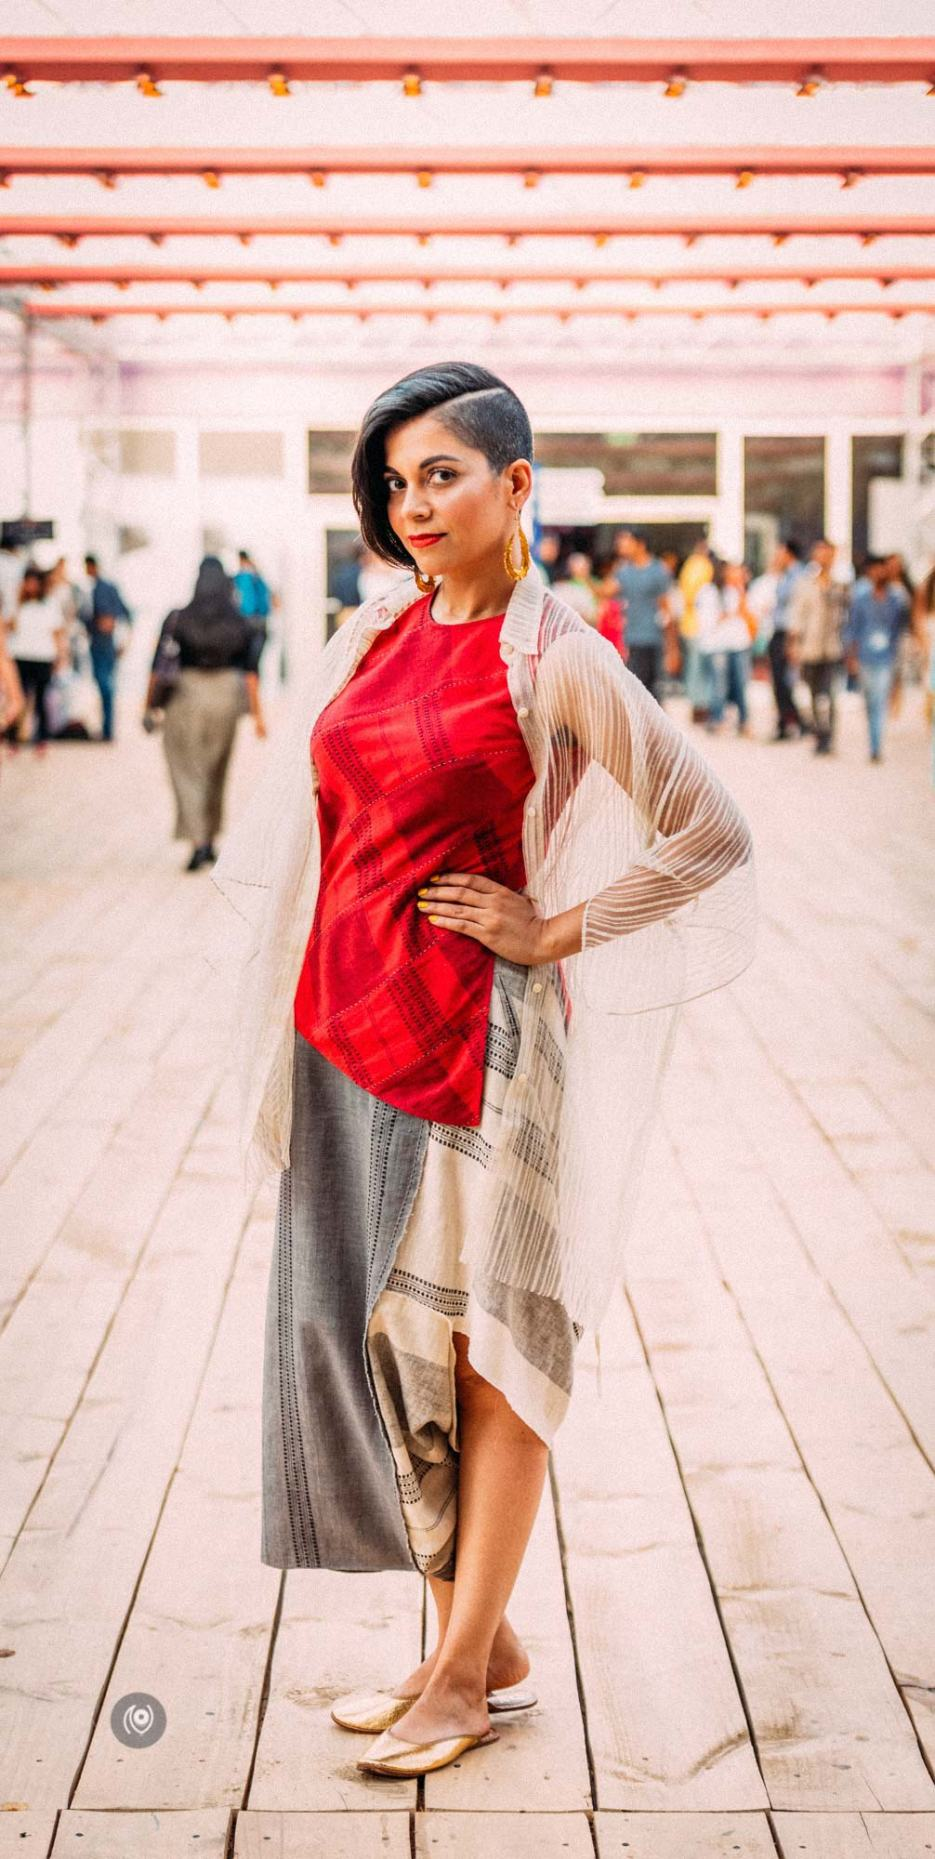 Naina.co, Visual Storyteller, Luxury Brands, Naina Redhu, Professional Photographer, Experience Collector, Luxury Photographer, Luxury Blogger, Lifestyle, Visual Storyteller for Luxury Brands, EyesForLuxury, Luxury Blogger, Lifestyle Blogger, Luxury Photographer India, Lifestyle Photographer India, Luxury Blogger India, Lifestyle Blogger India, #EyesForFashion, #AIFWSS17, Amazon India Fashion Week, Spring Summer, #CoverUp, CoverUp 88, Day Tqo, India Fashion Week, Amazon Fashion Week, Kiko Milano, Makeup, Kiko Milano India, #EyesForBeauty, Urvashi Kaur